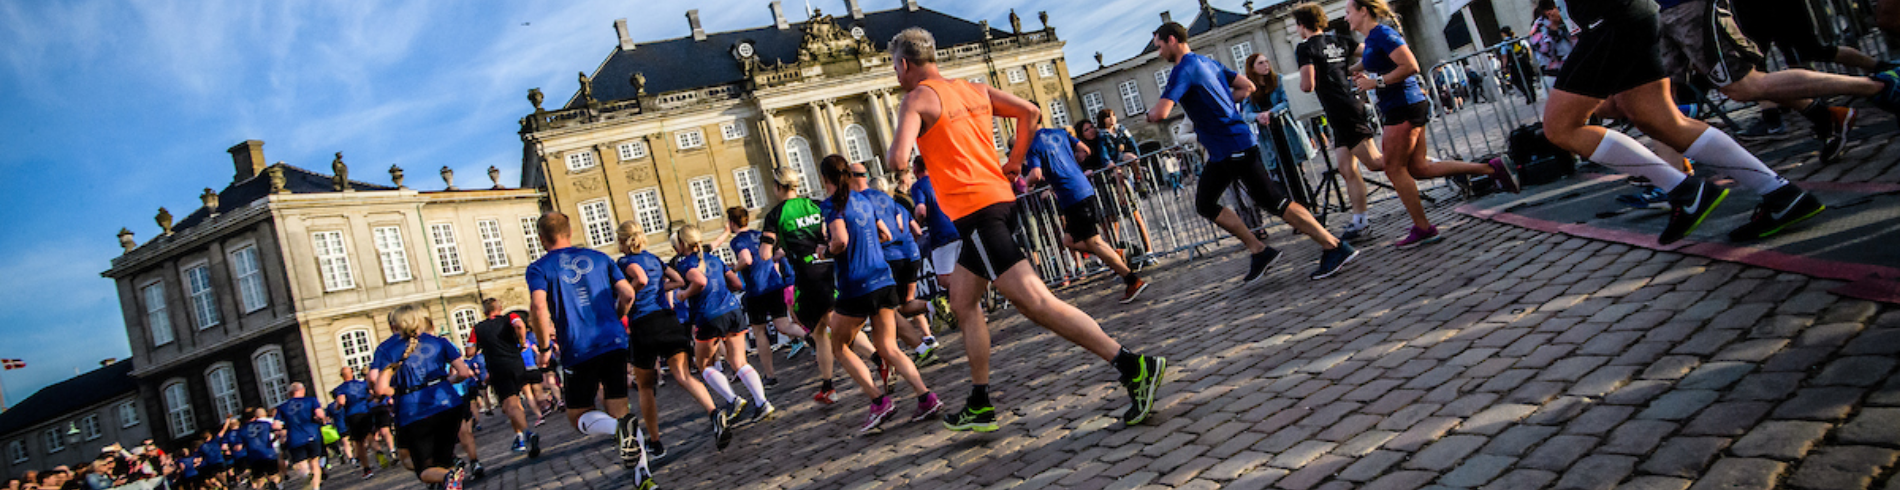 Royal Run 2019 - Stemningsbilleder cover image